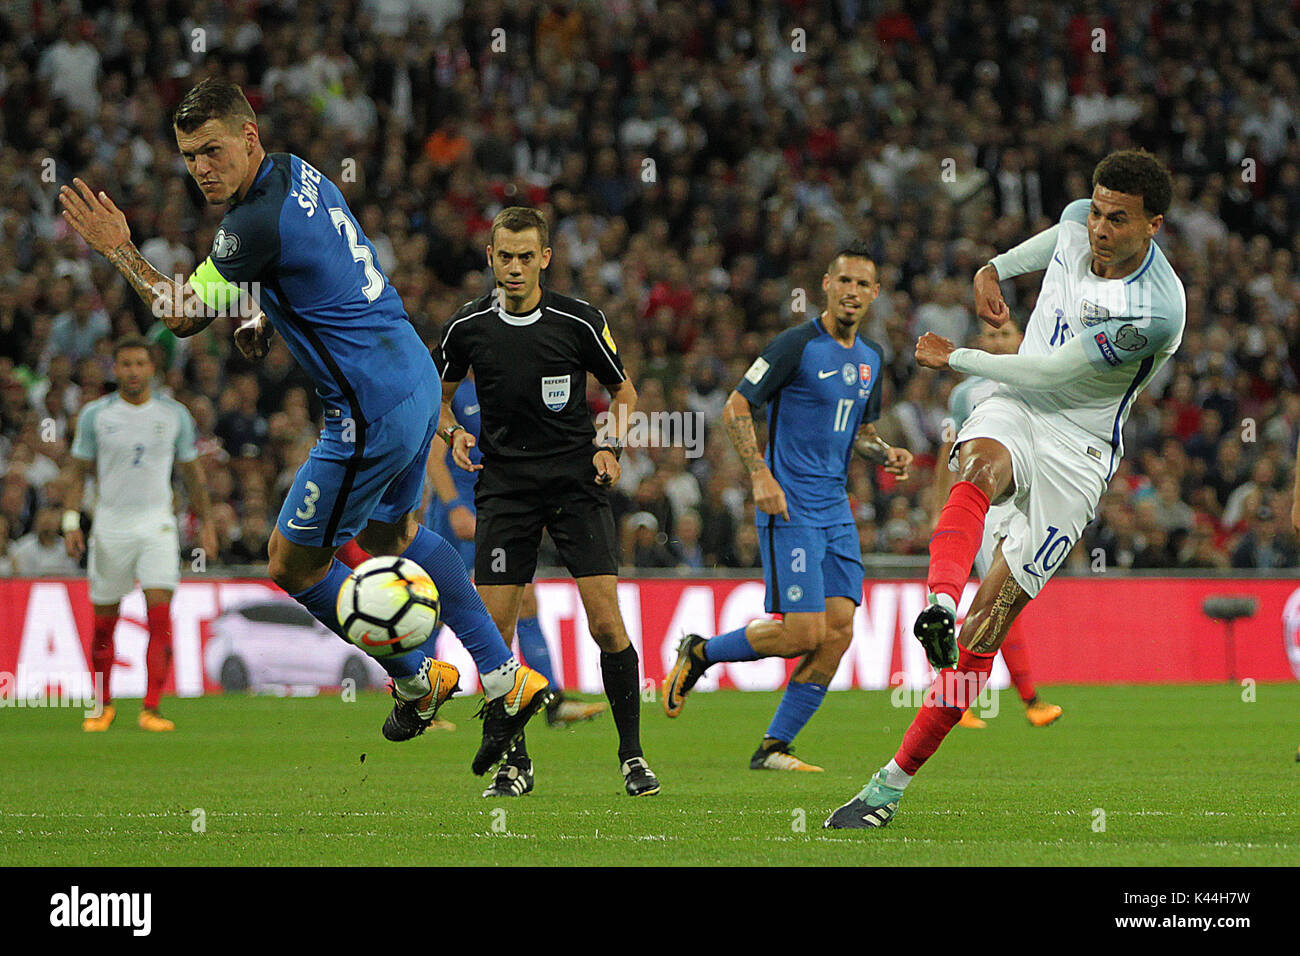 Wonderful England Football World Cup 2018 - dele-alli-of-england-shoots-at-goal-during-the-fifa-world-cup-2018-K44H7W  Pictures_714187 .jpg